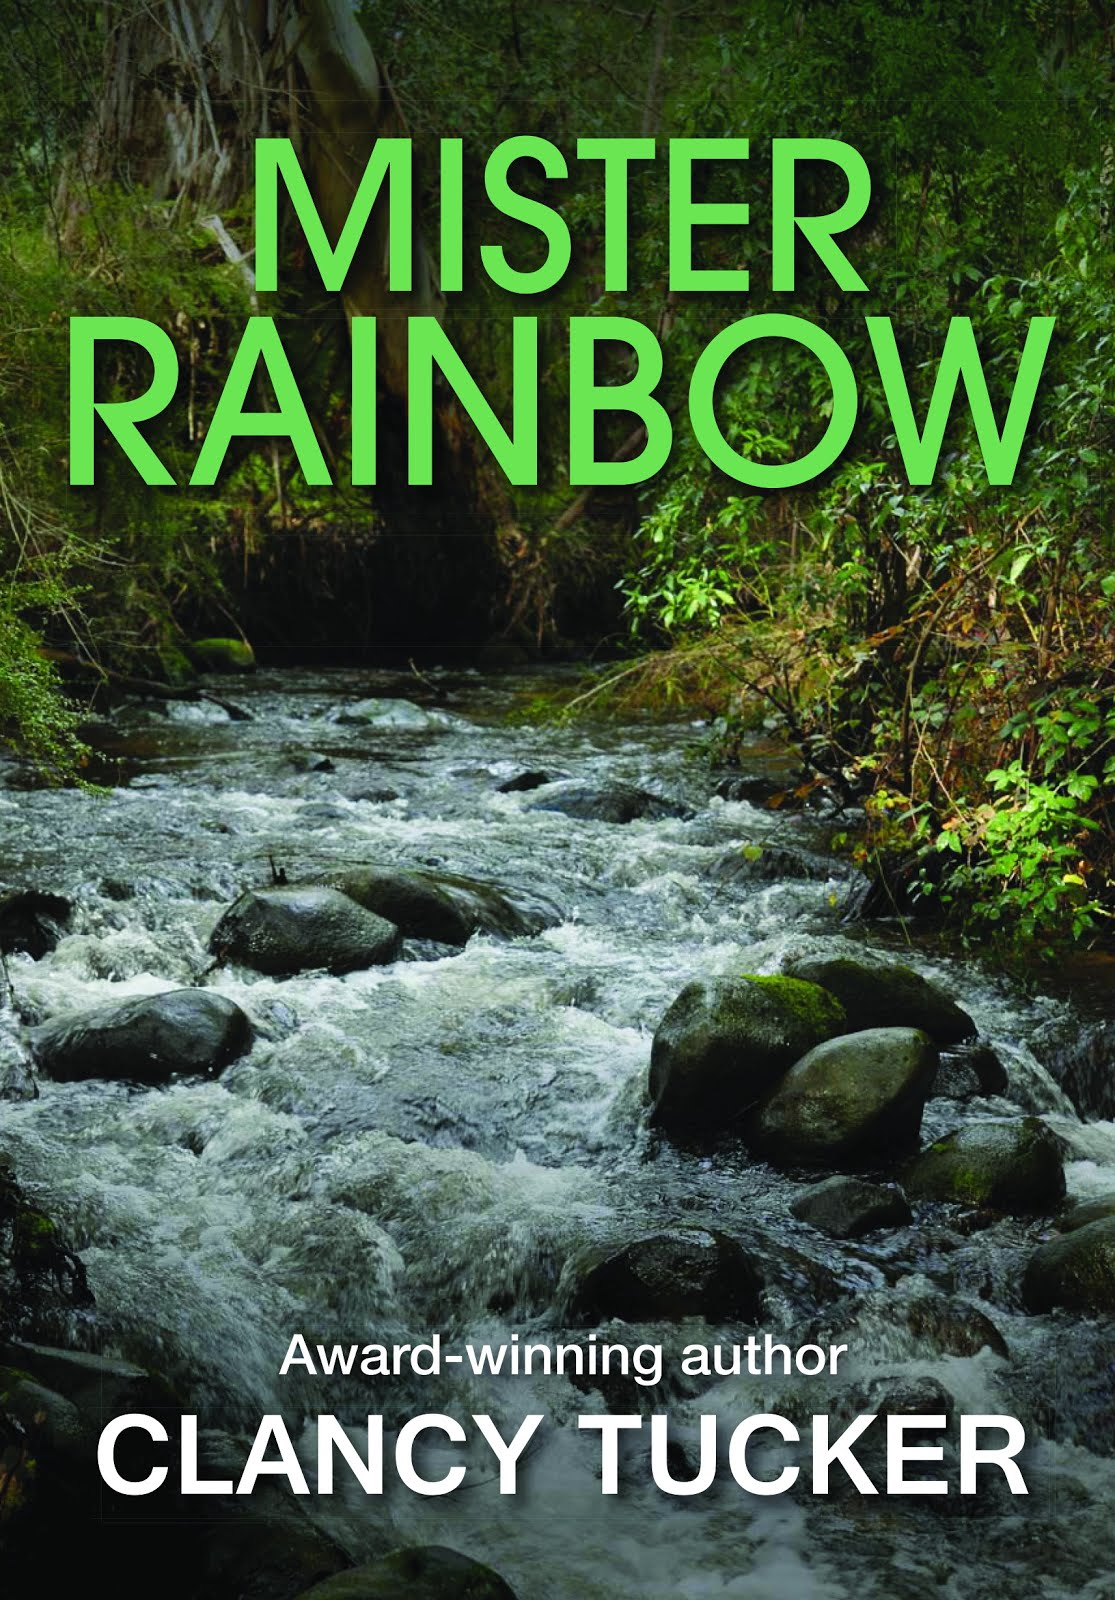 BUY 'MISTER RAINBOW' PAPERBACK FROM OUTSIDE AUSTRALIA